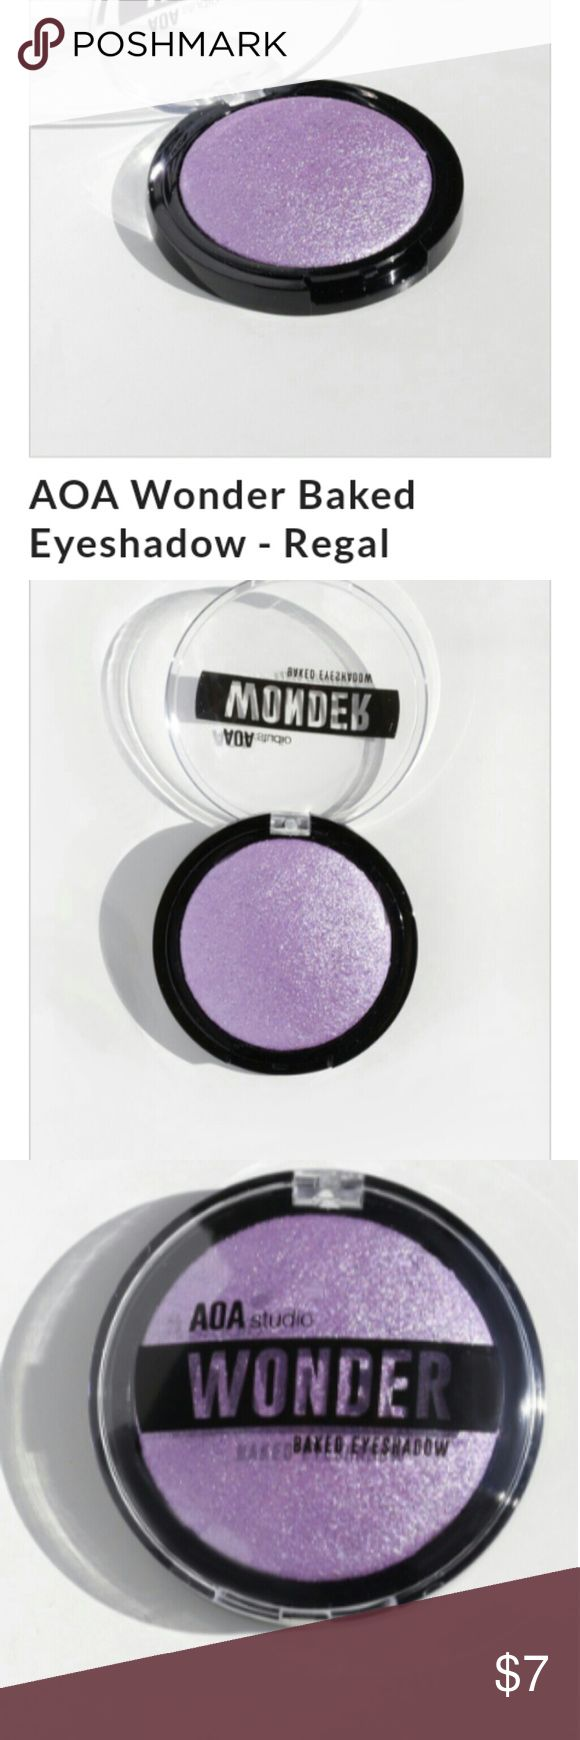 🆕AOA WONDER BAKED EYESHADOW IN REGAL NEW SEALED 🆕AOA WONDER BAKED EYESHADOW IN REGAL. (PURPLE) 💎NEW SEALED NEVER USED 💎HIGH PIGMENT FOR LESS COST 💎CAN BE USED WET OR DRY AOA Makeup Eyeshadow